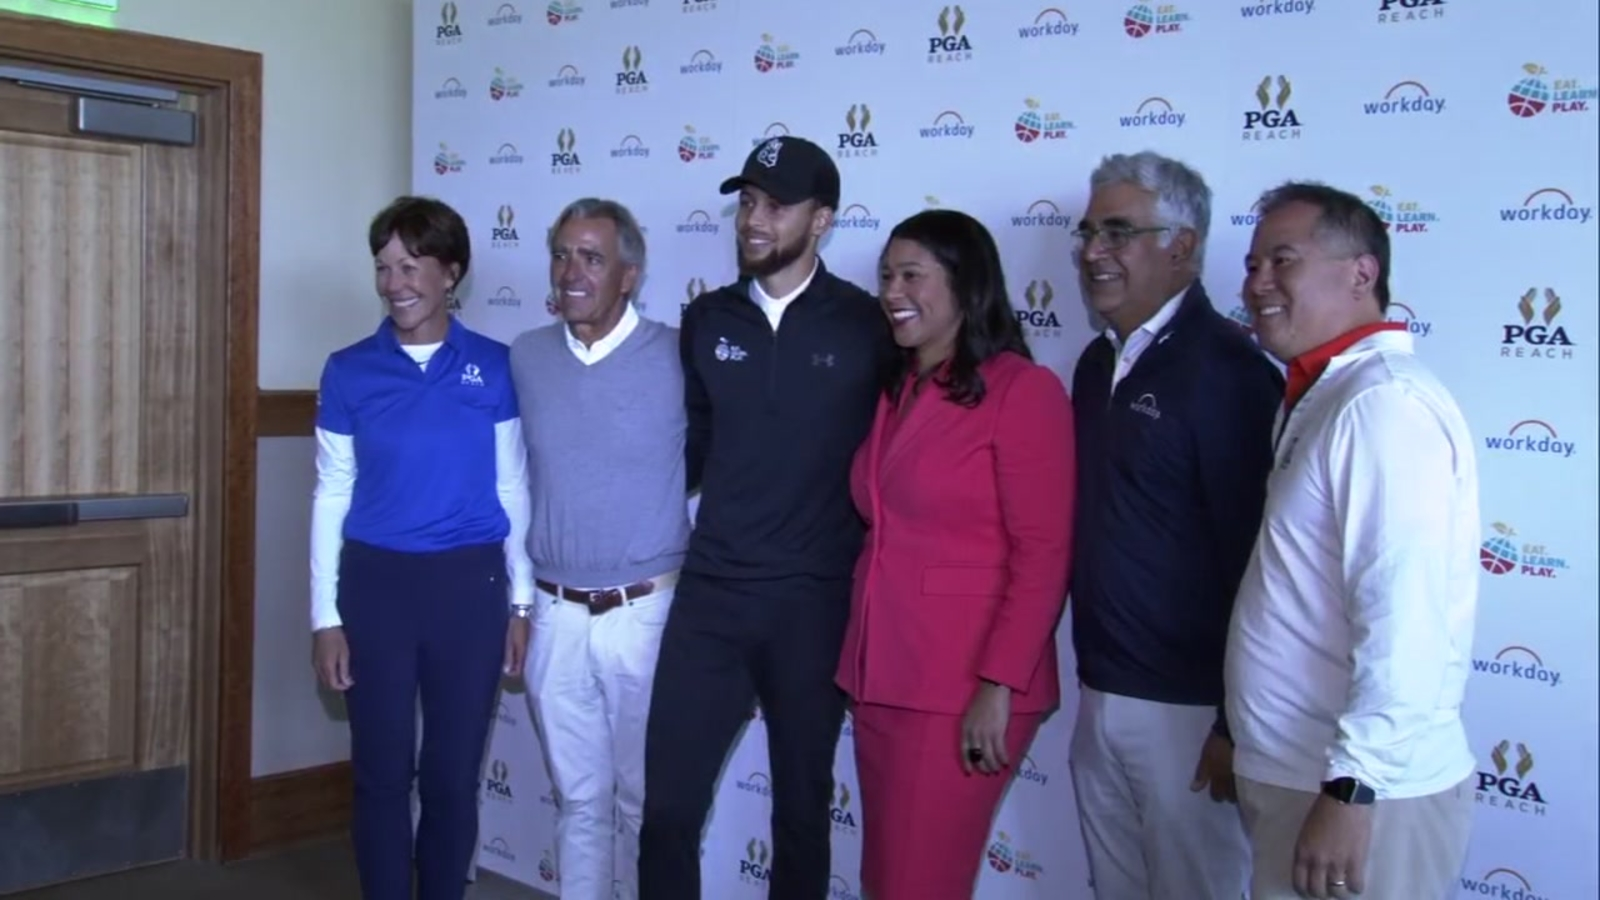 Stephen Curry hosts charity golf event in San Francisco's Harding Park